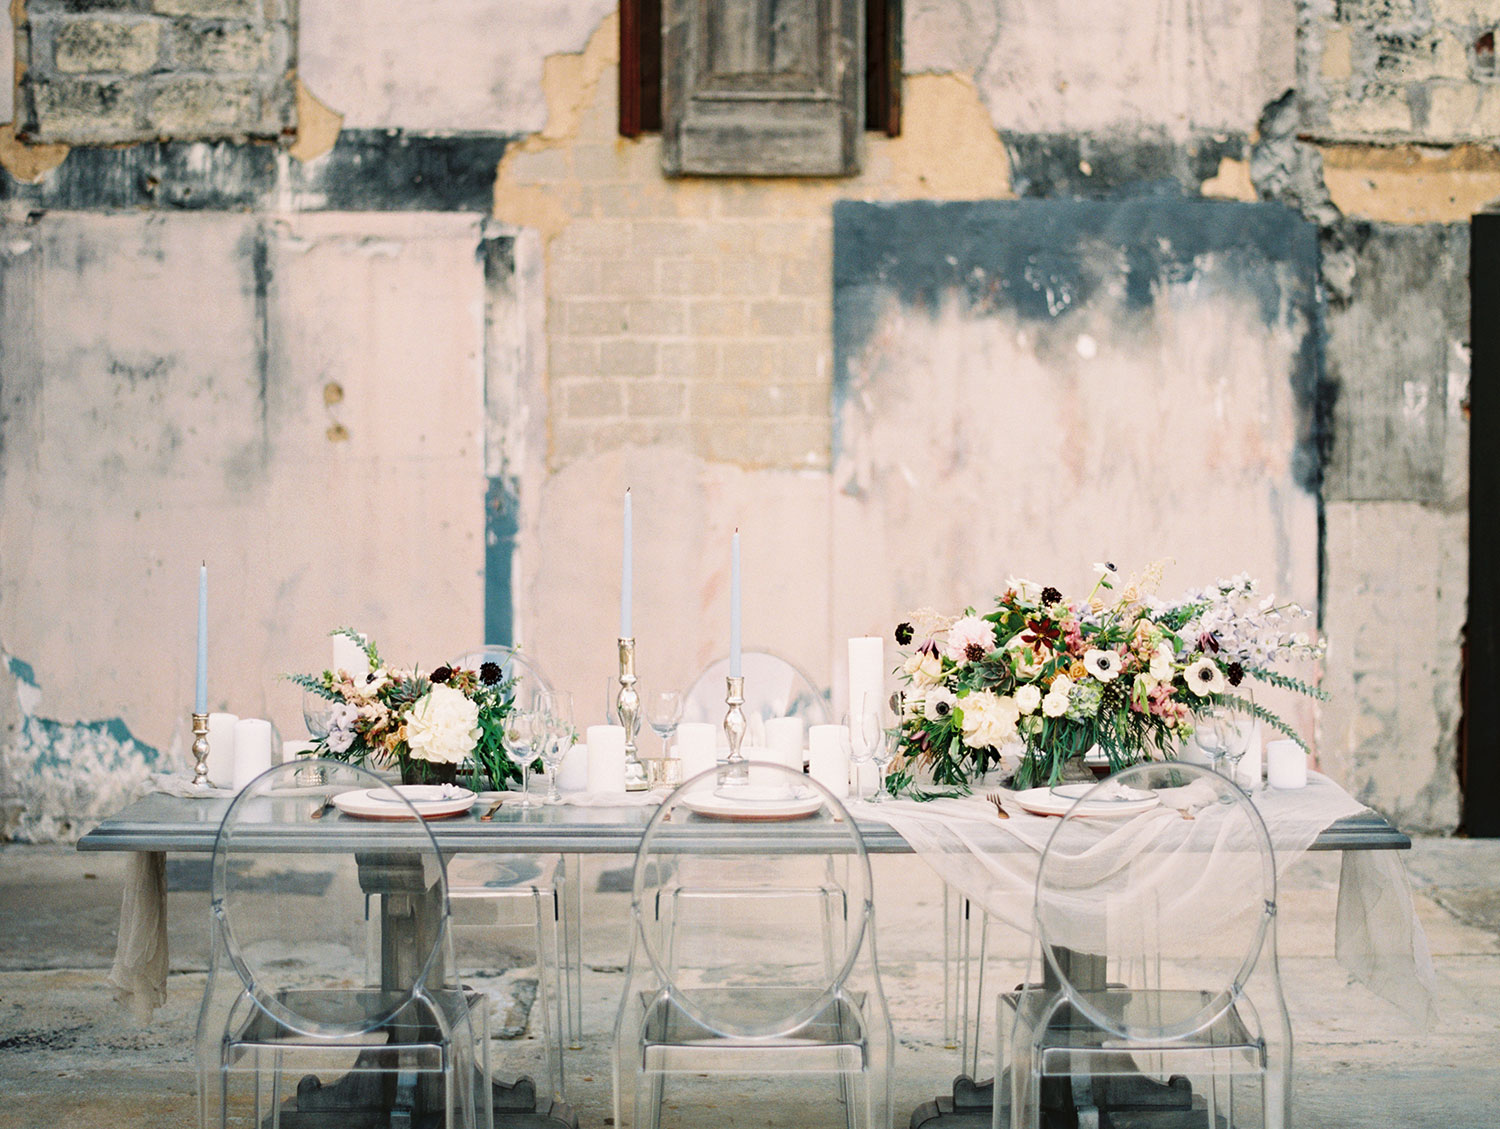 Grey farm table with a white runner and moody flowers